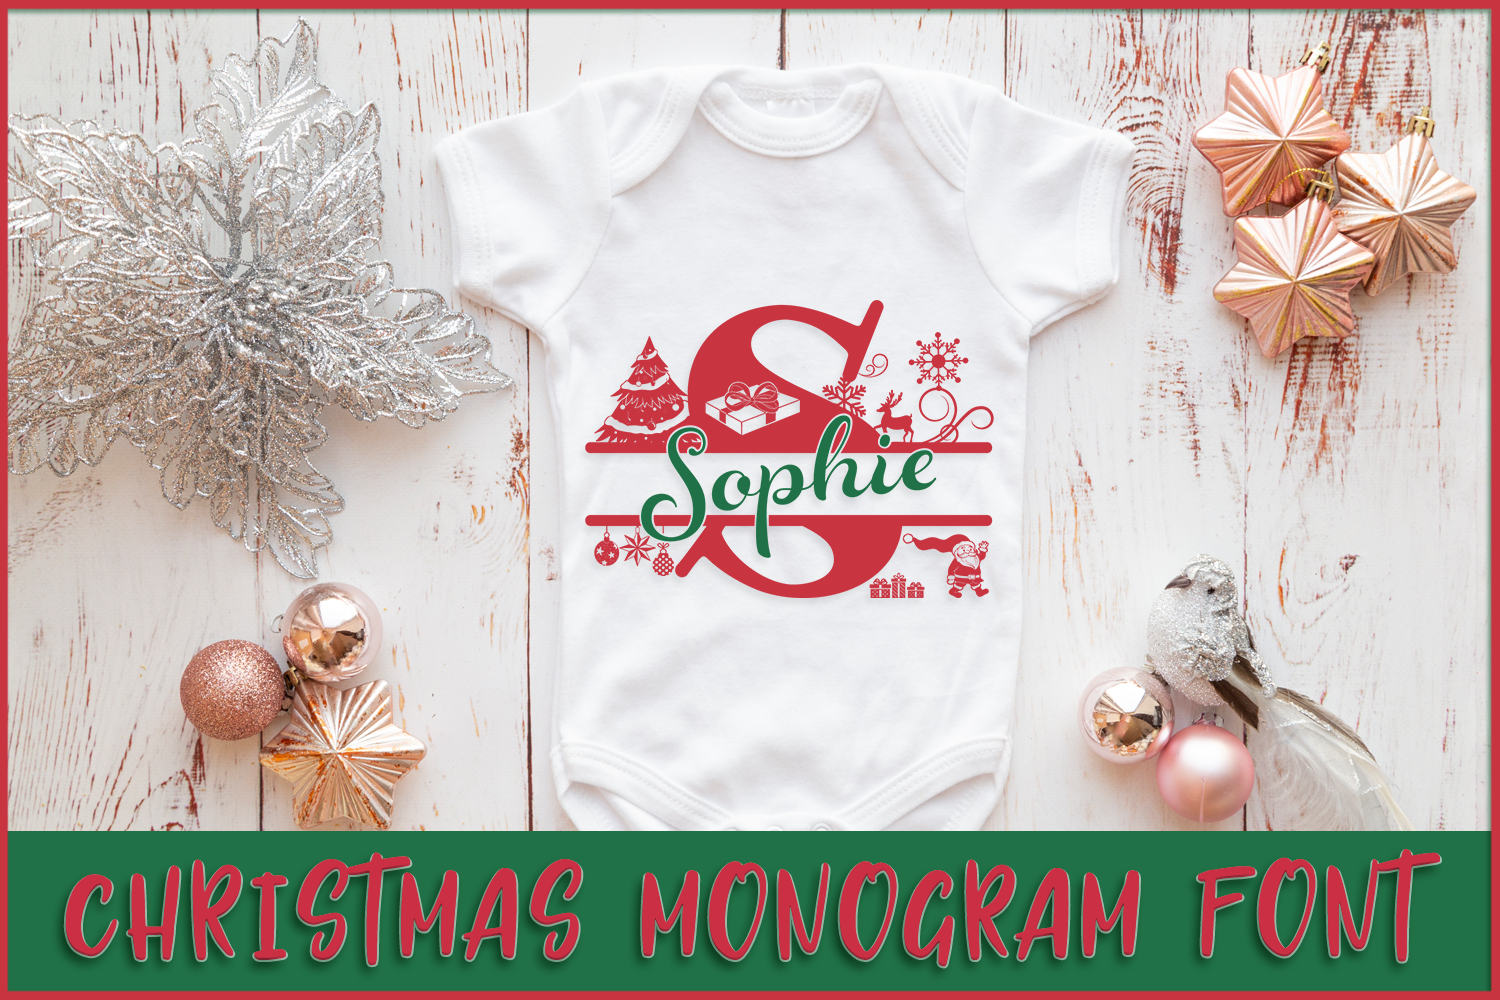 Download Free Christmas Font By Anastasia Feya Creative Fabrica for Cricut Explore, Silhouette and other cutting machines.